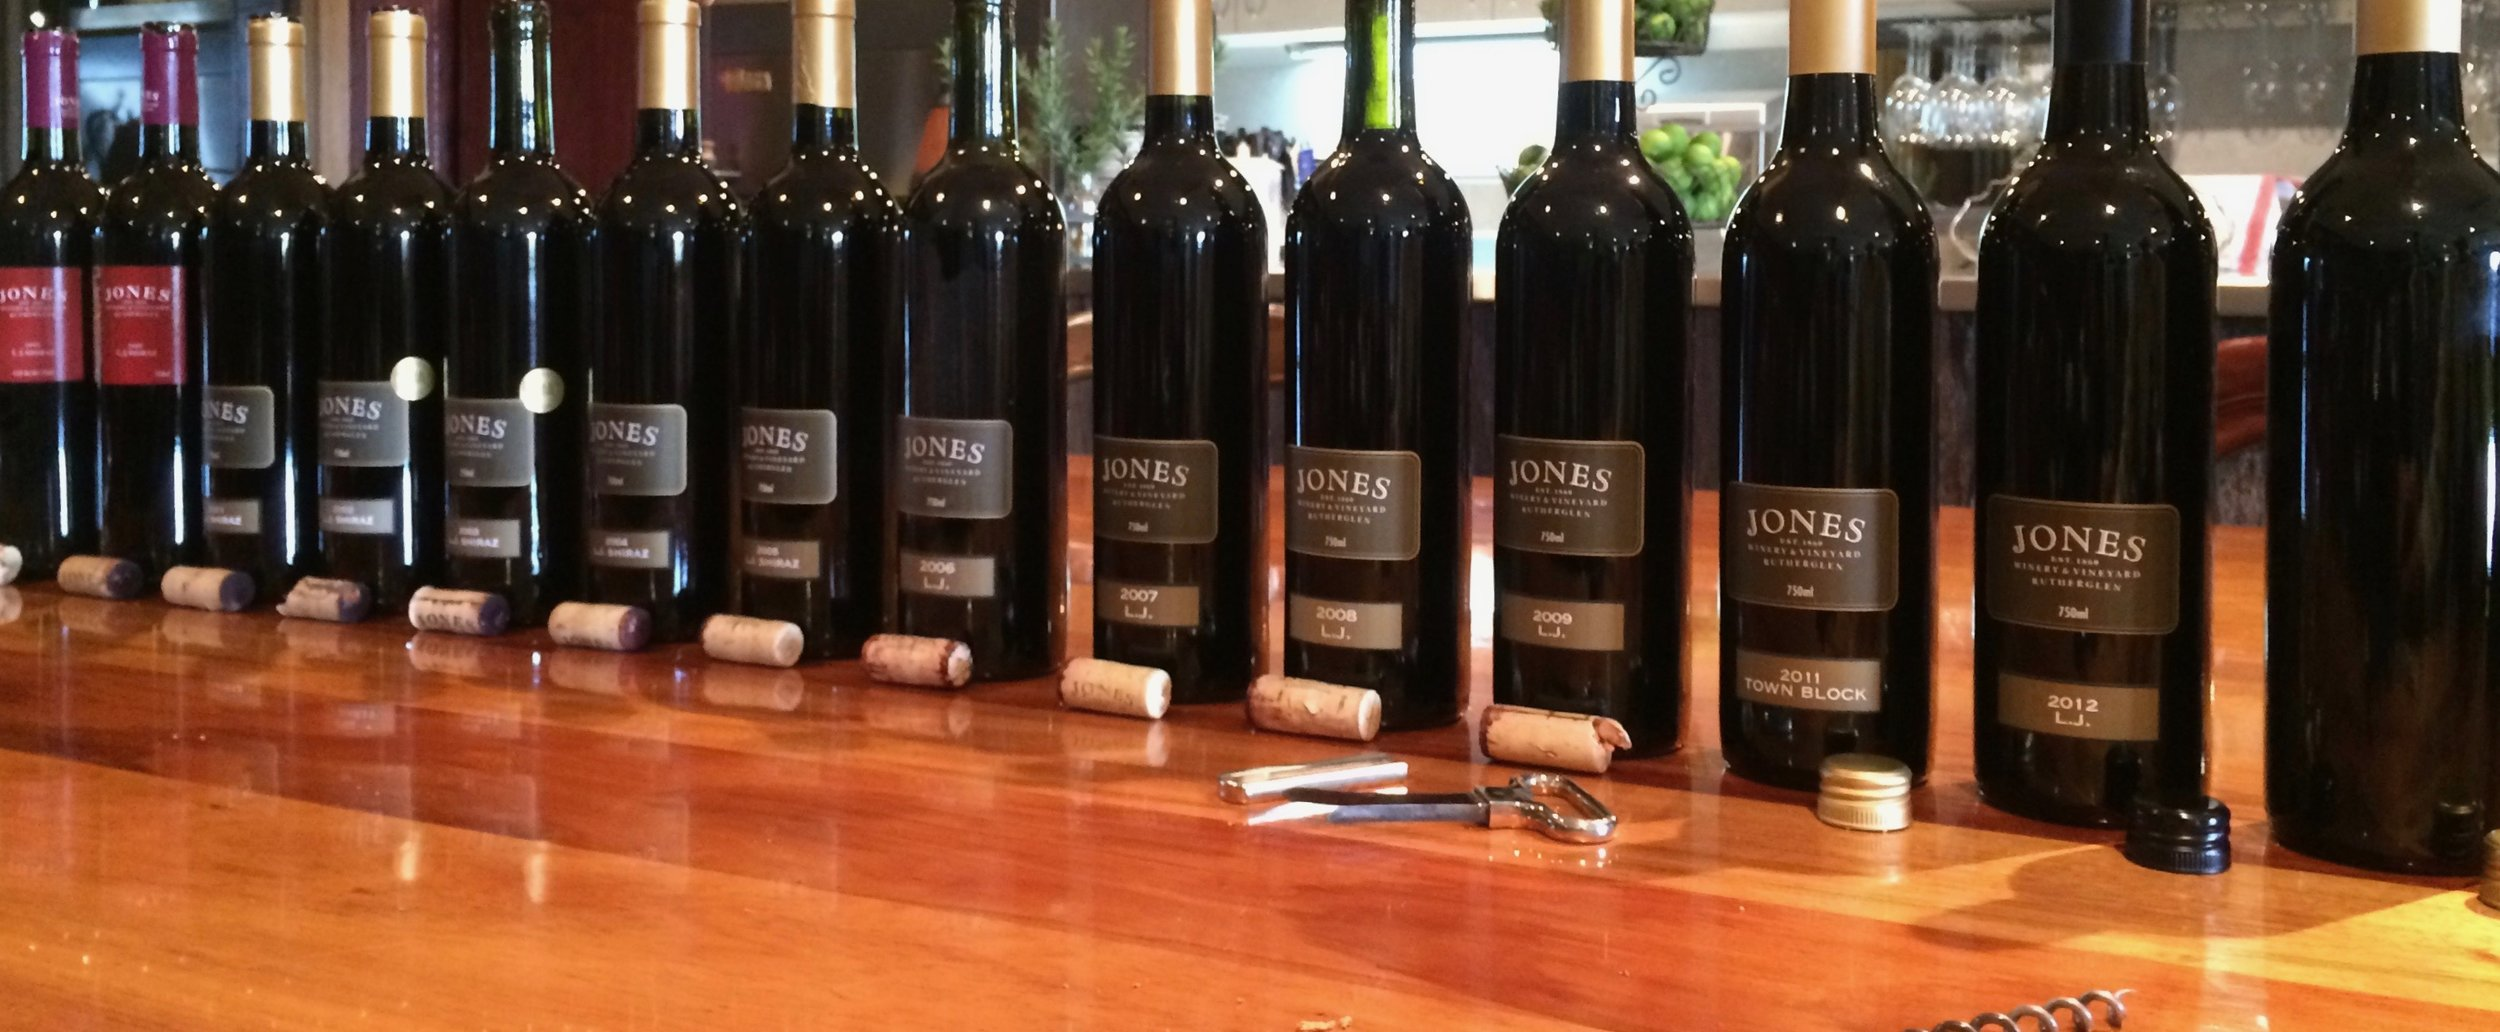 Vertical tasting of L.J. wines. This extraordinary wine is made from a Shiraz vineyard that has over 110 years of age.